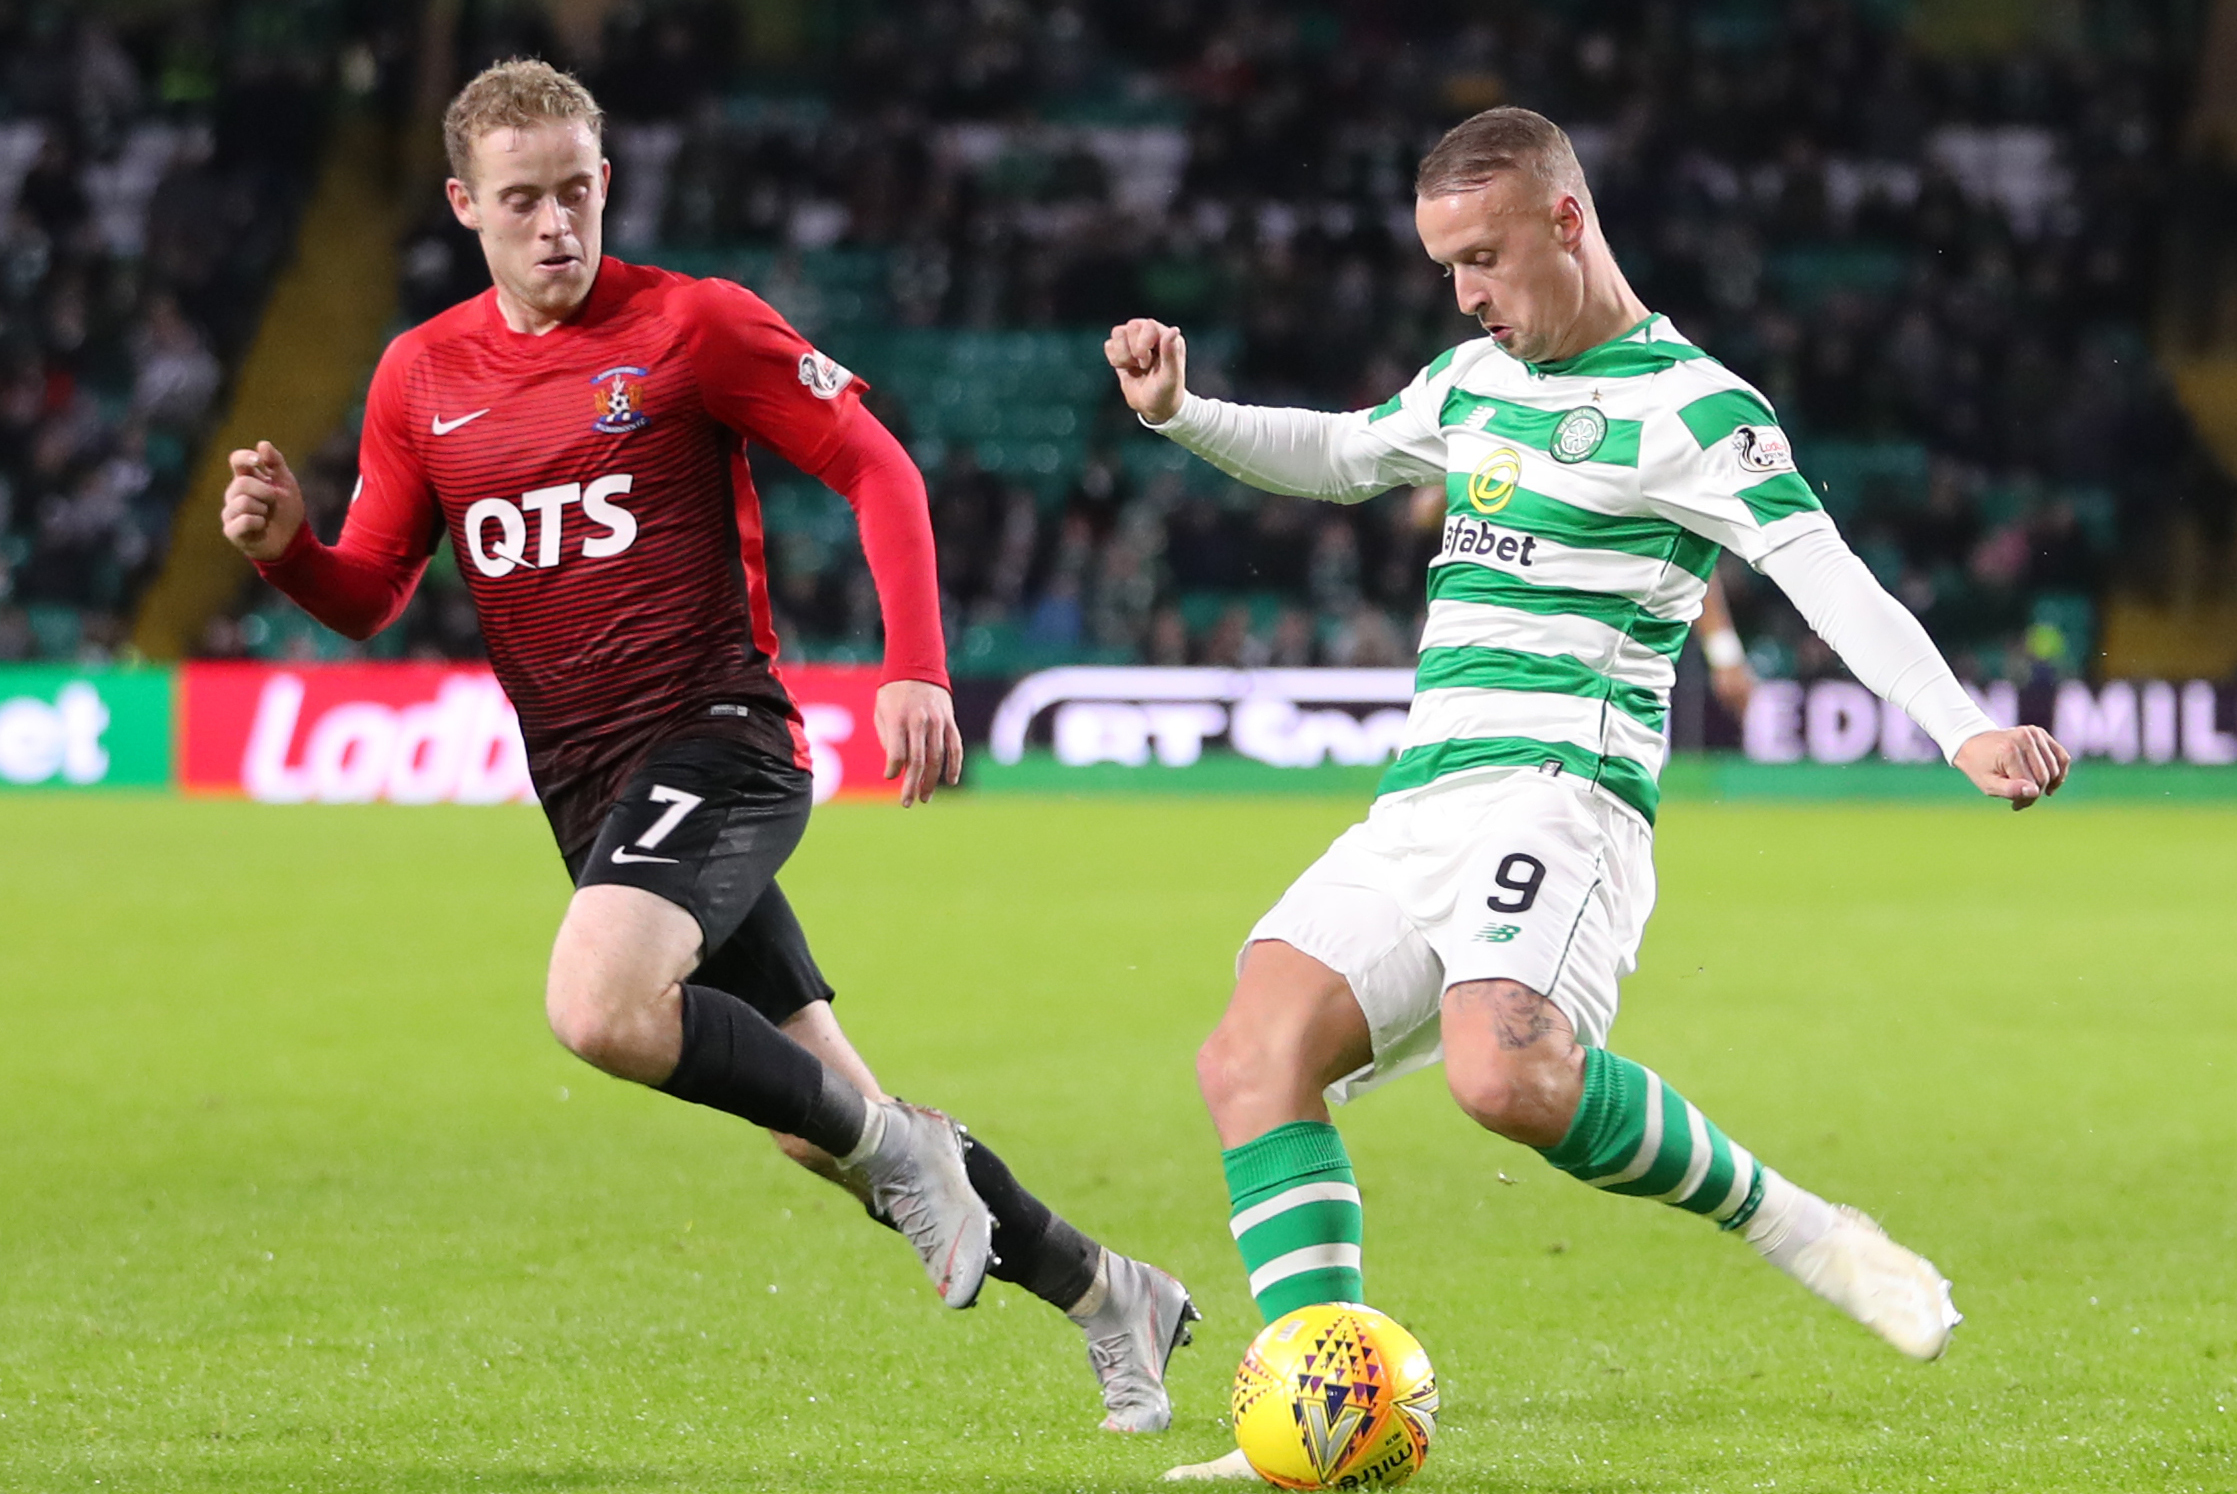 Davie Hay: Leigh Griffiths the most experienced striker at Celtic and can still come back from this